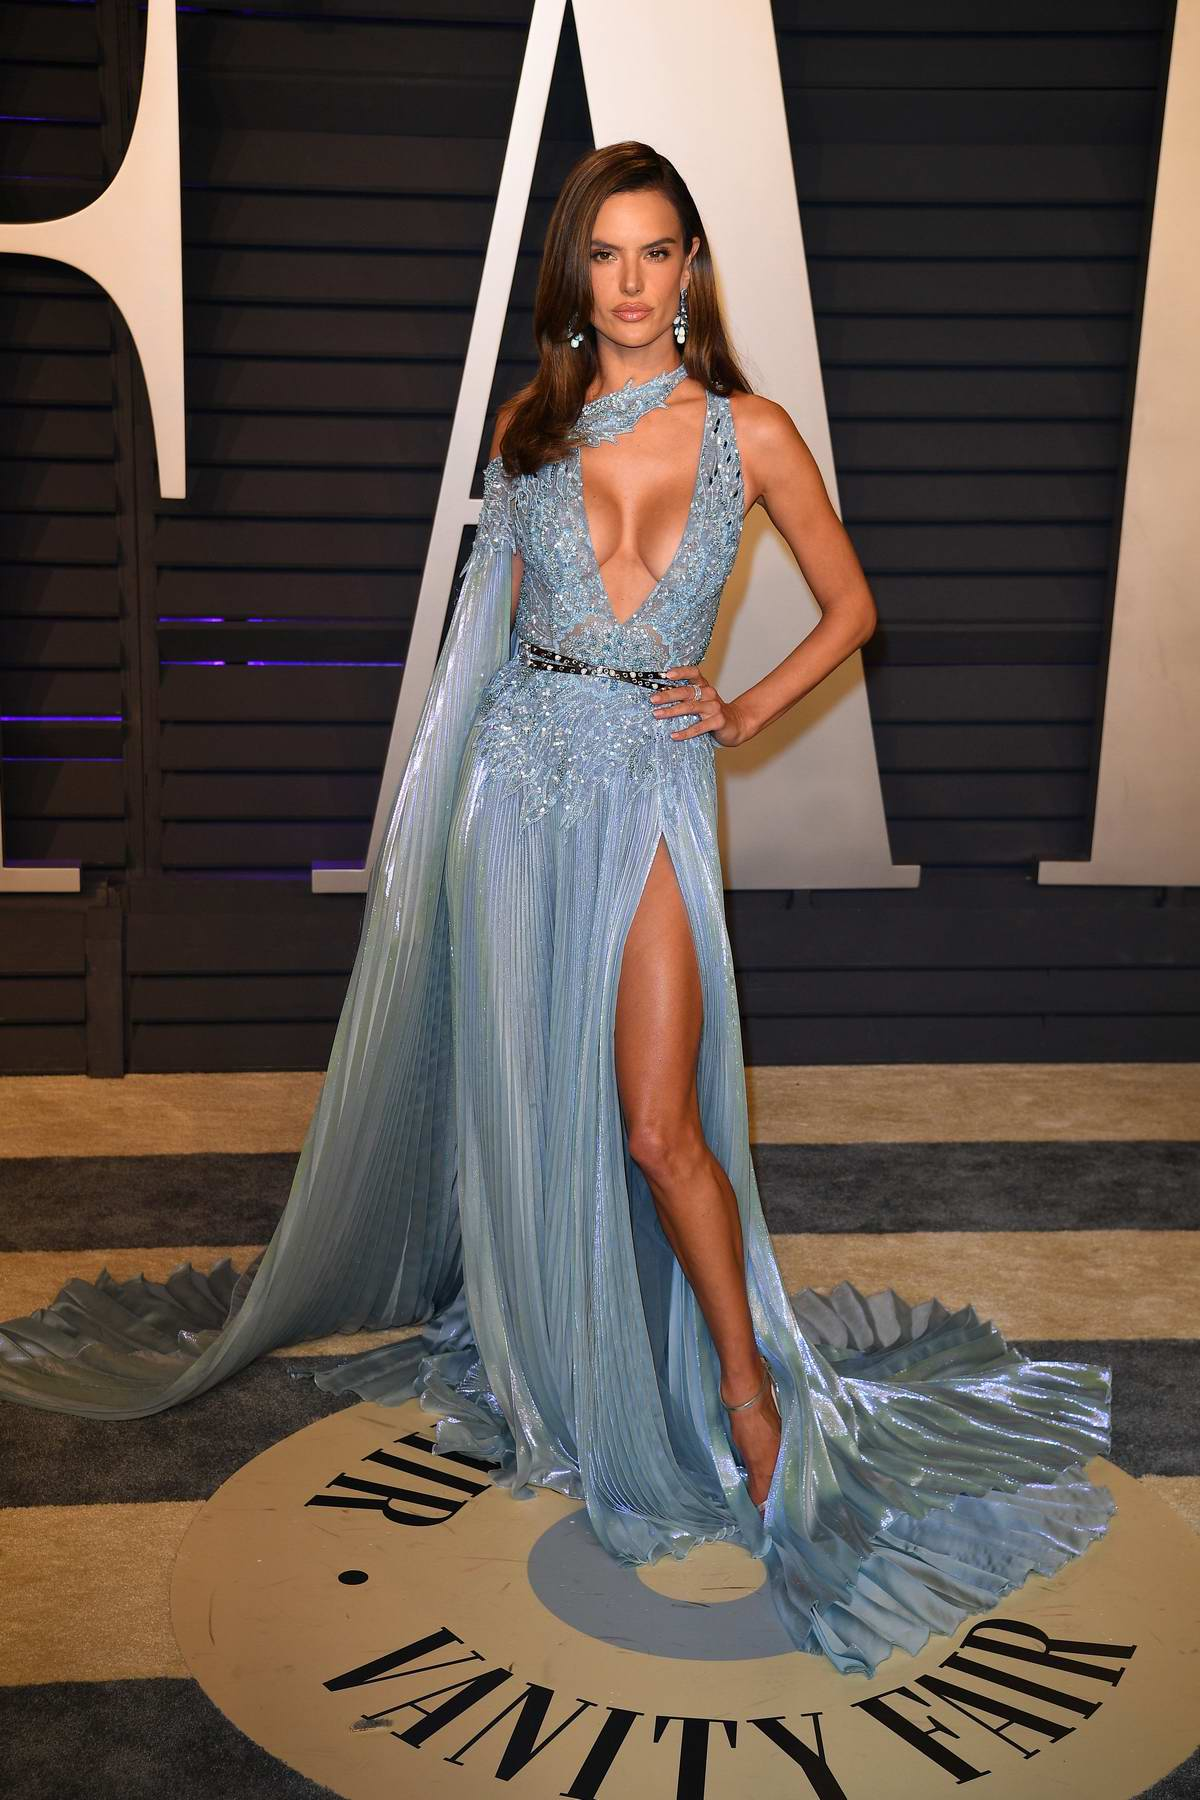 Alessandra Ambrosio attends the Vanity Fair Oscar Party at Wallis Annenberg Center for the Performing Arts in Beverly Hills, California